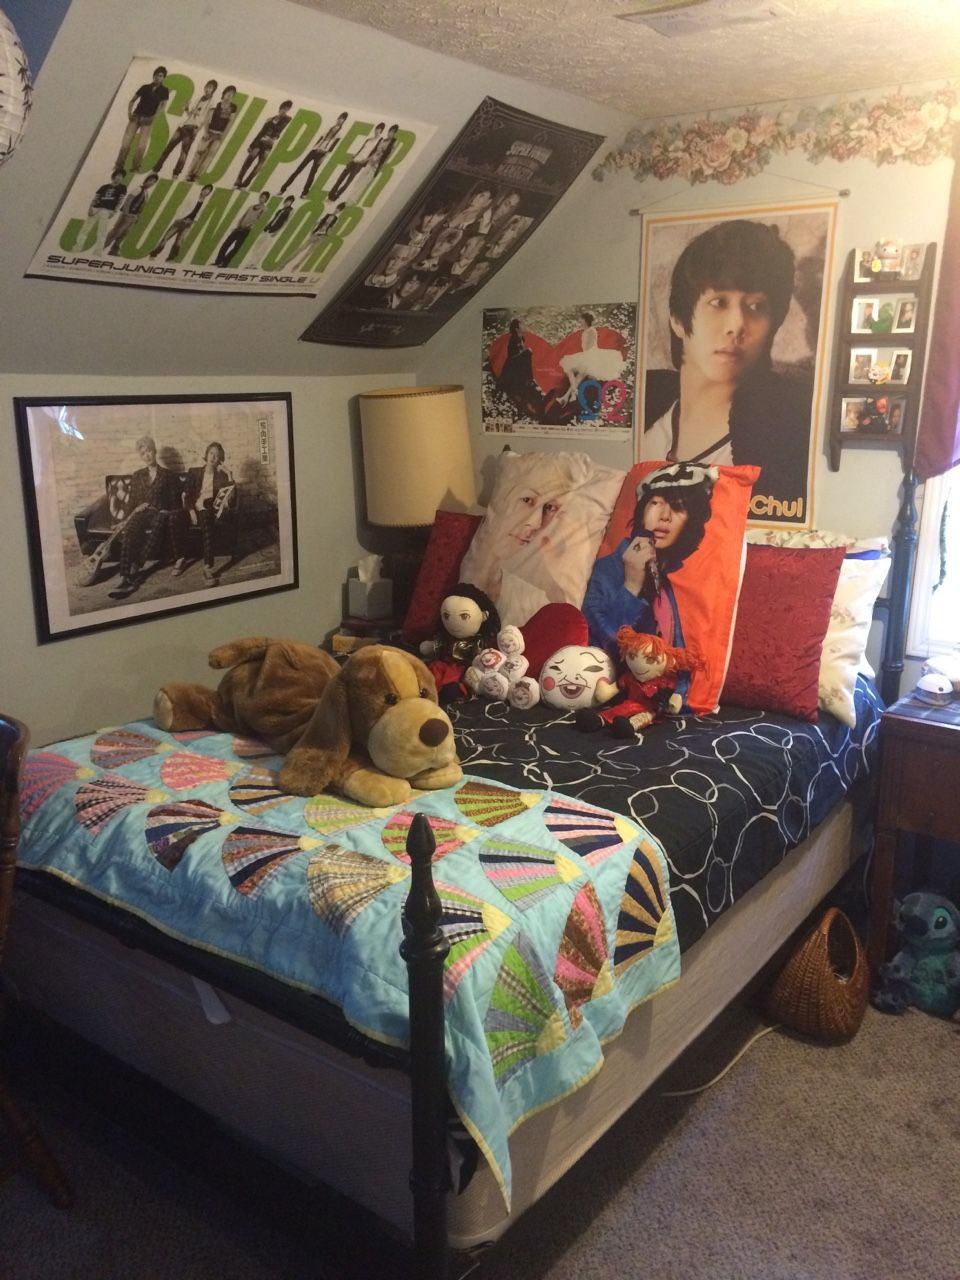 Kpop Bedroom mostly SujuHeechul Asianfanfics